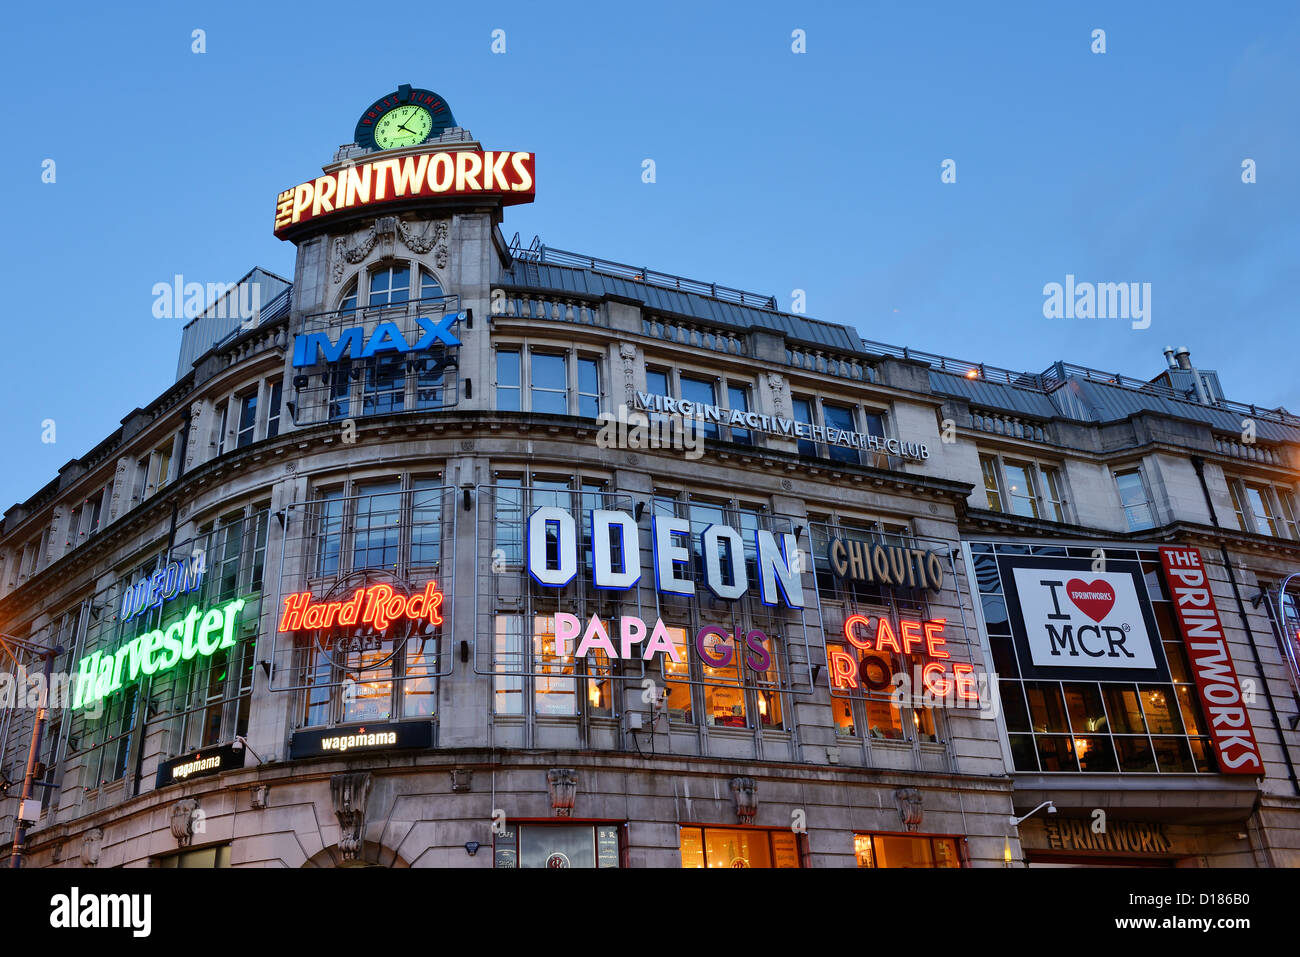 The Printworks entertainment venue in Manchester City Centre - Stock Image